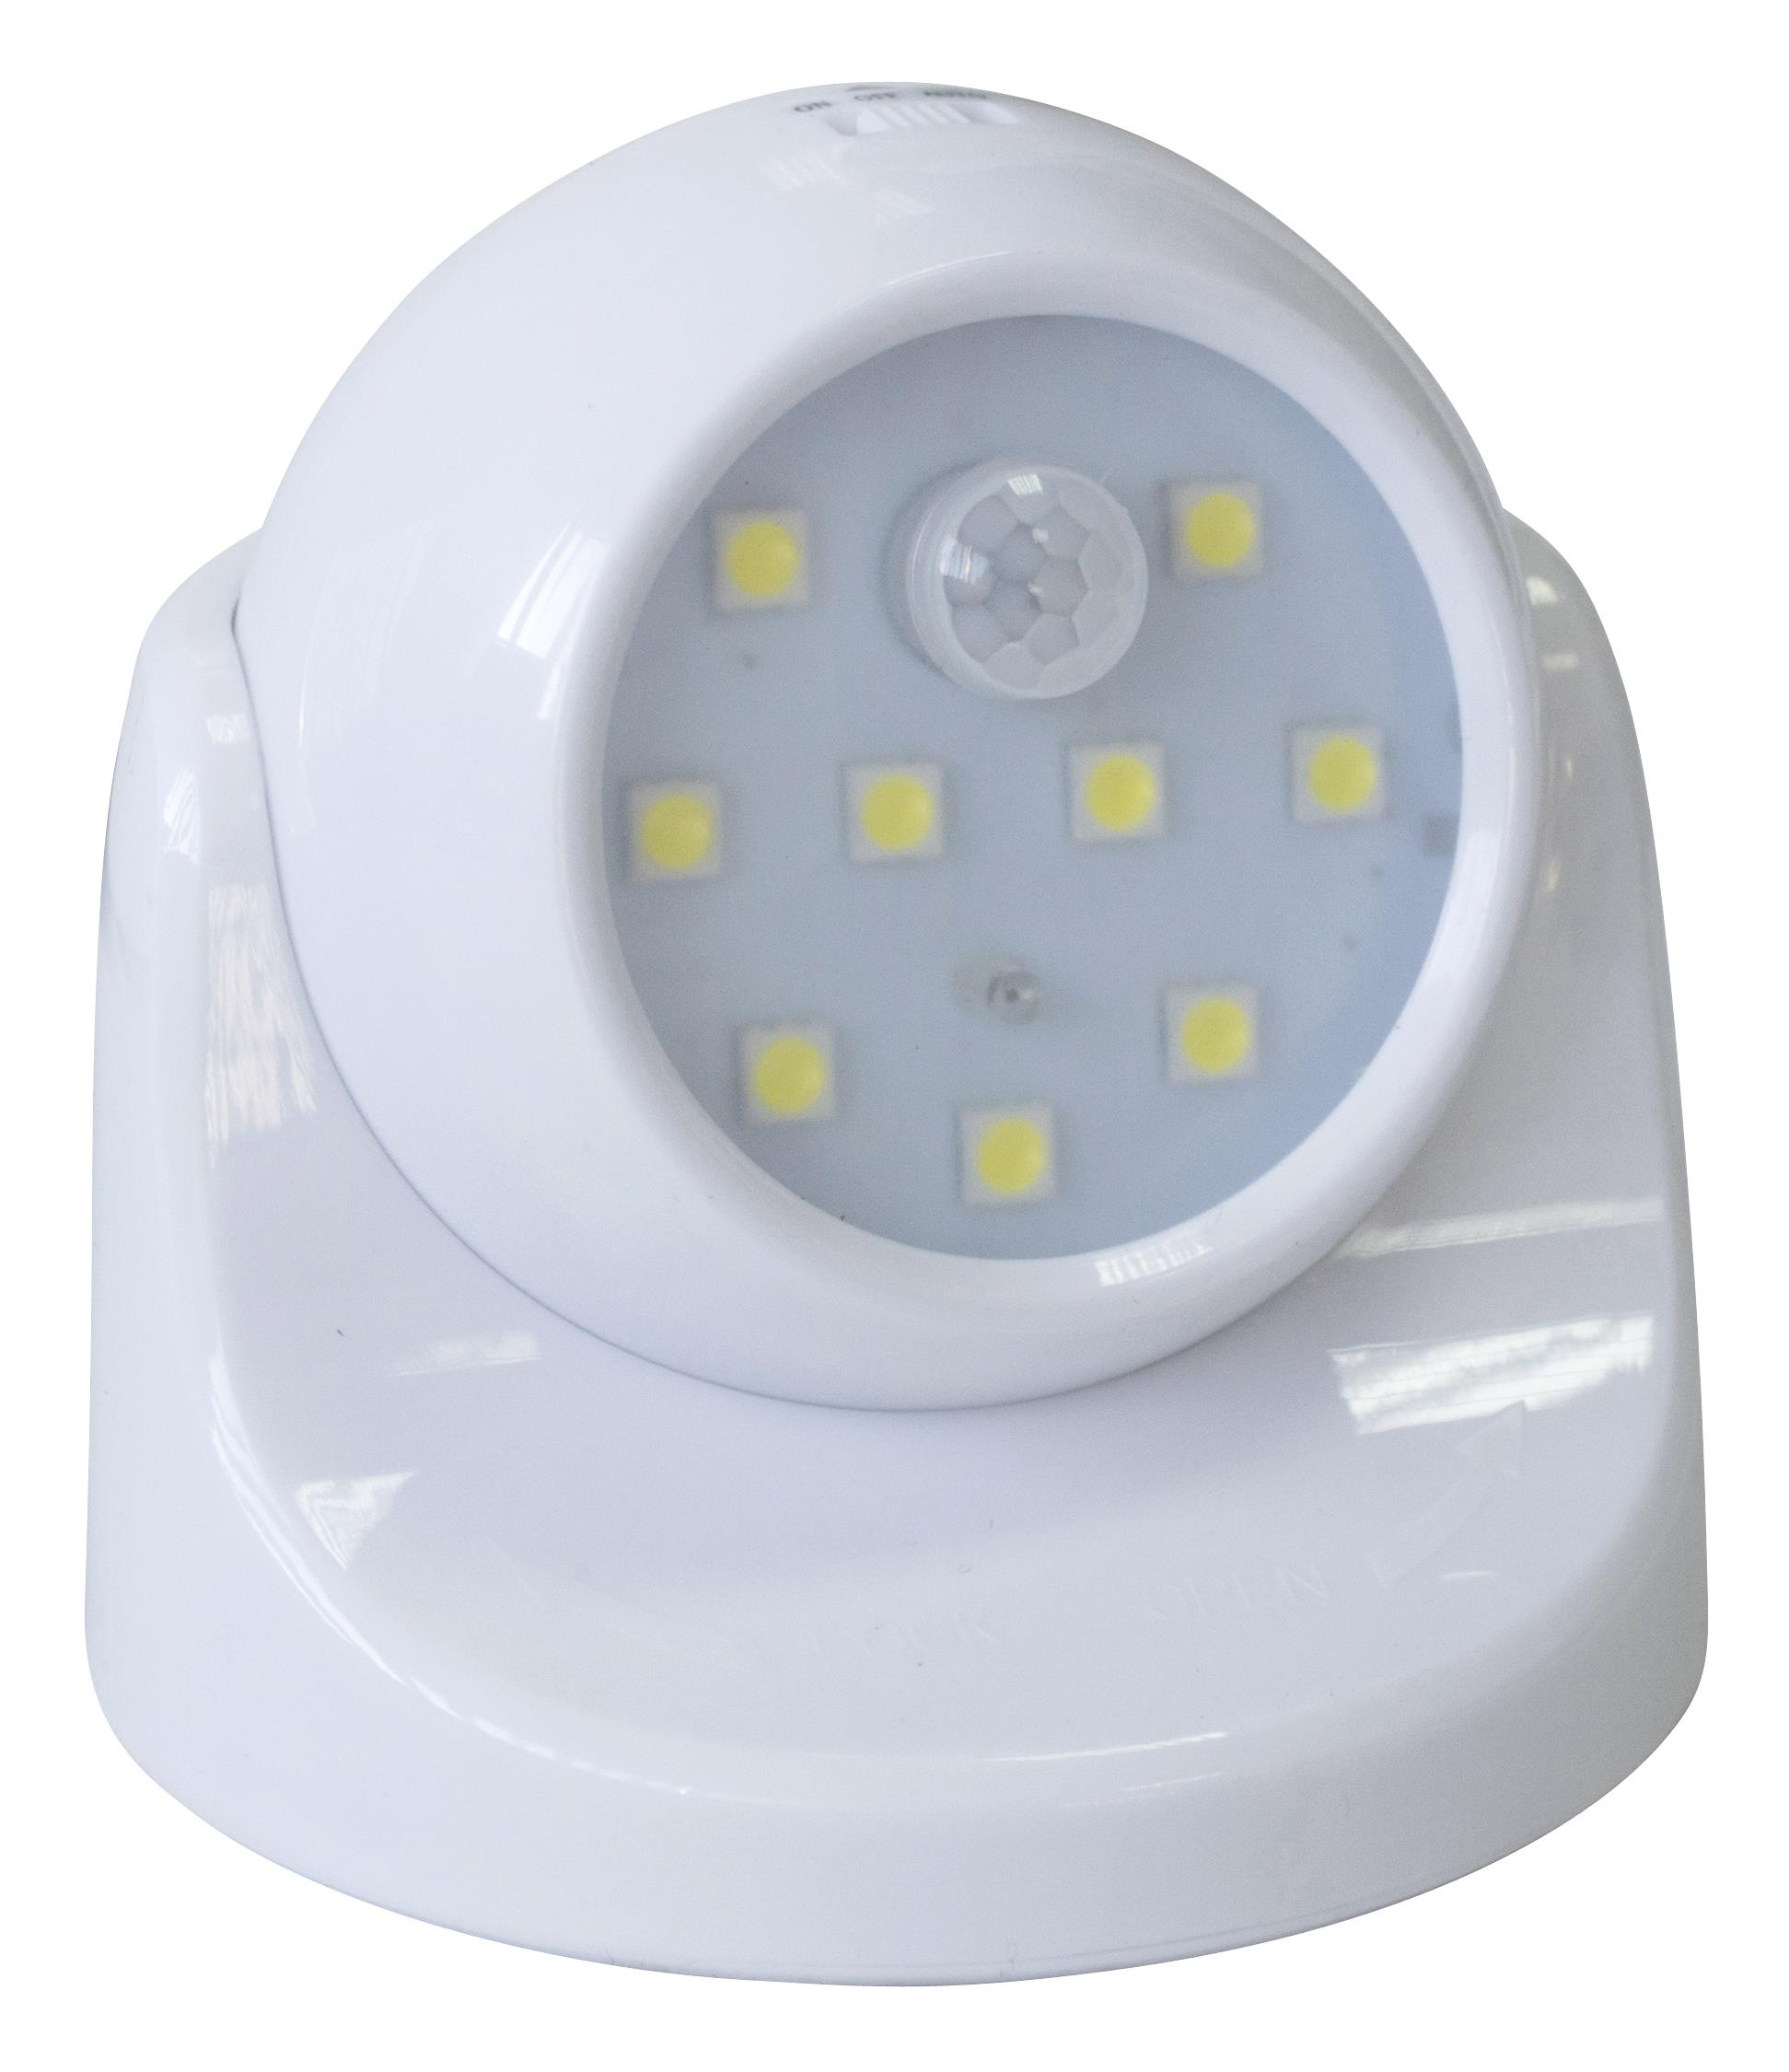 9 smd led wireless motion sensor light amtech get the right tool for the job mozeypictures Image collections